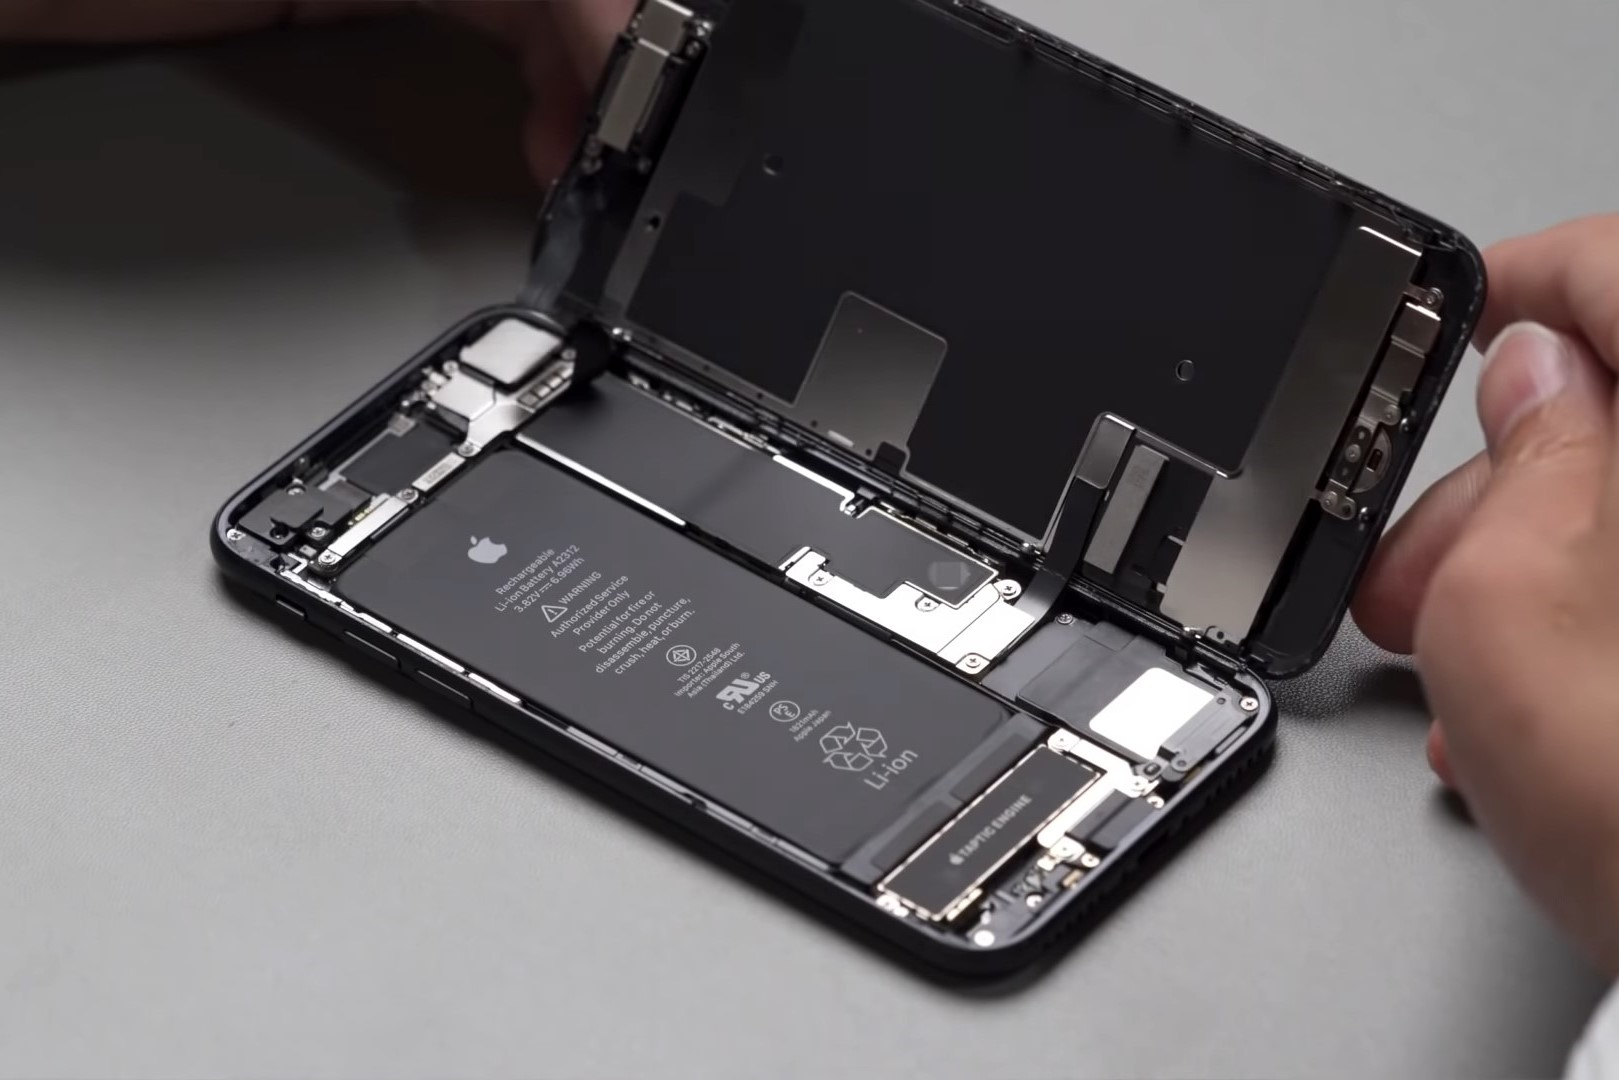 Teardown Shows iPhone 8 Motherboard in the New iPhone SE